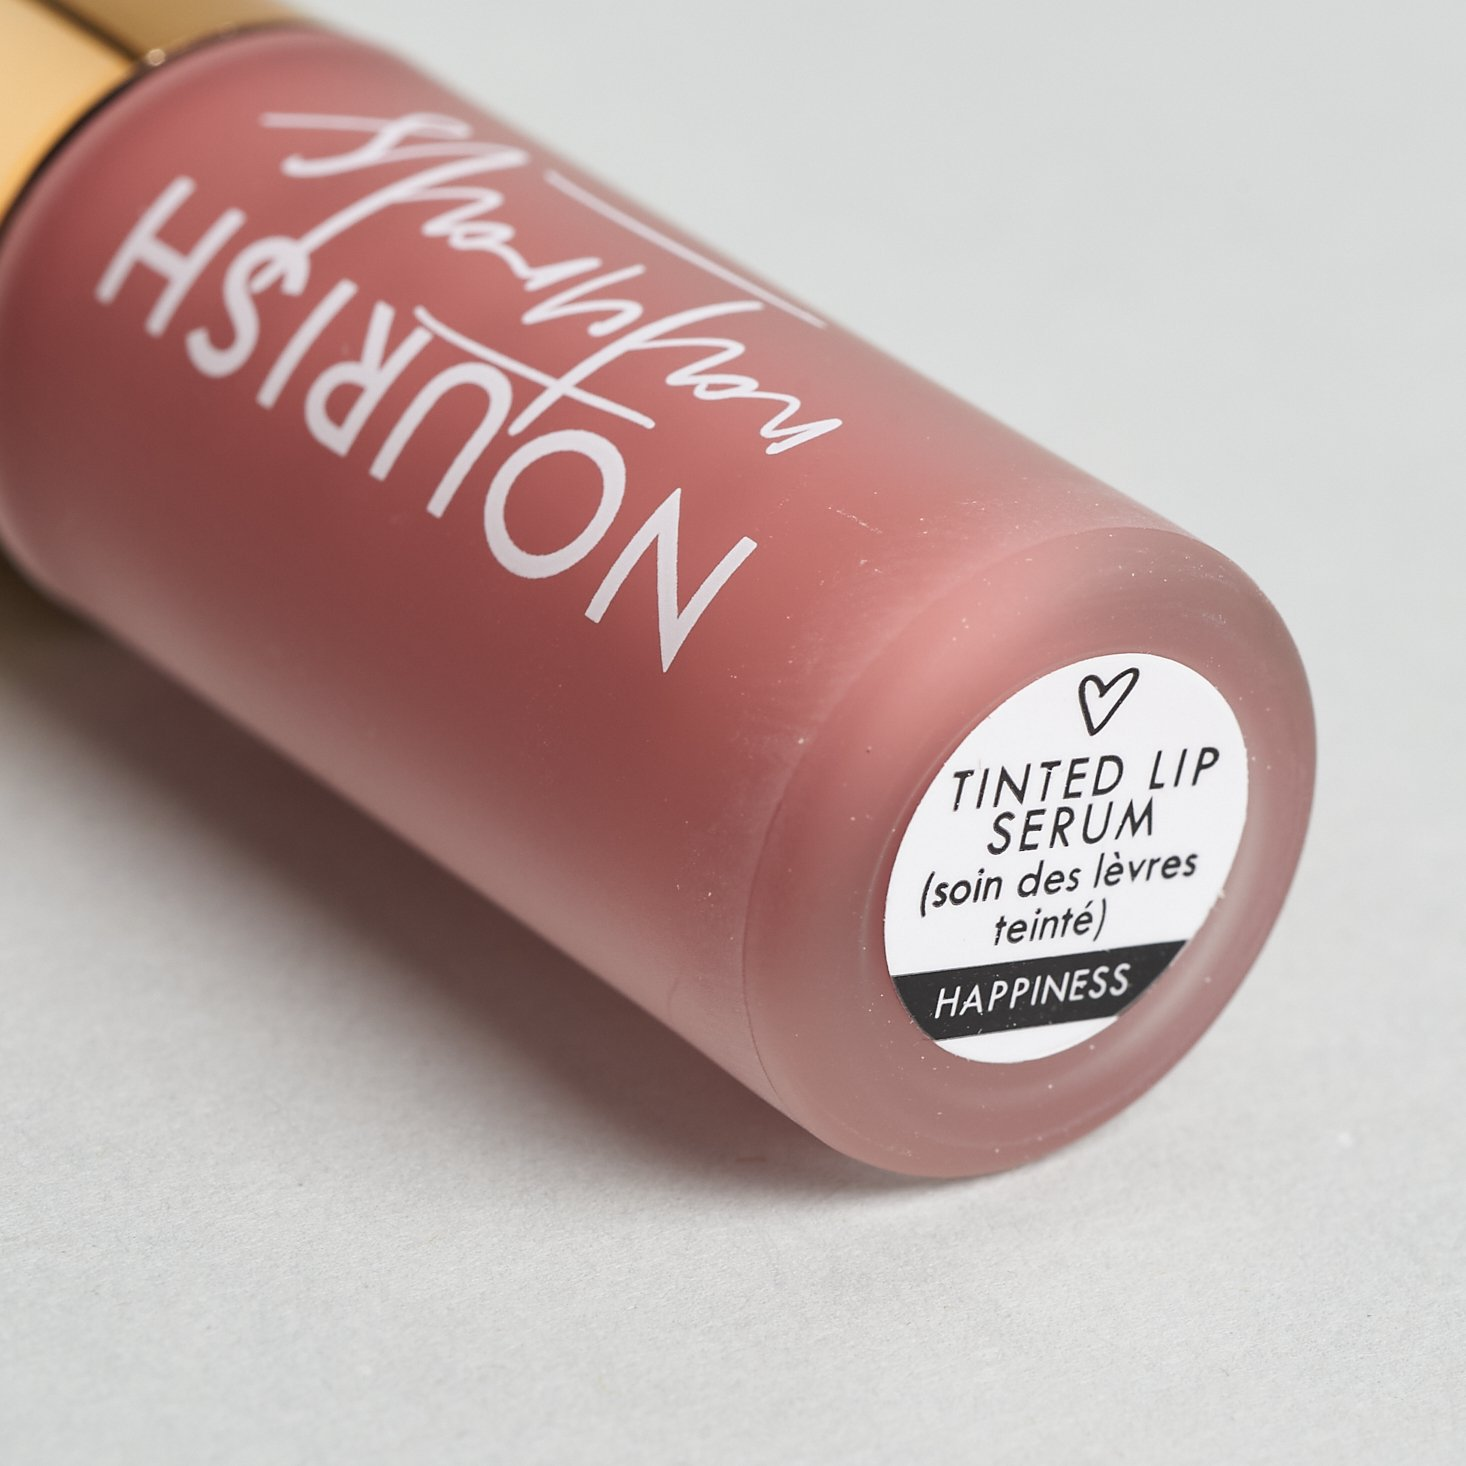 Nourish Naturals Tinted Lip Serum in Happiness Close-Up for Nourish Beauty Box September 2020